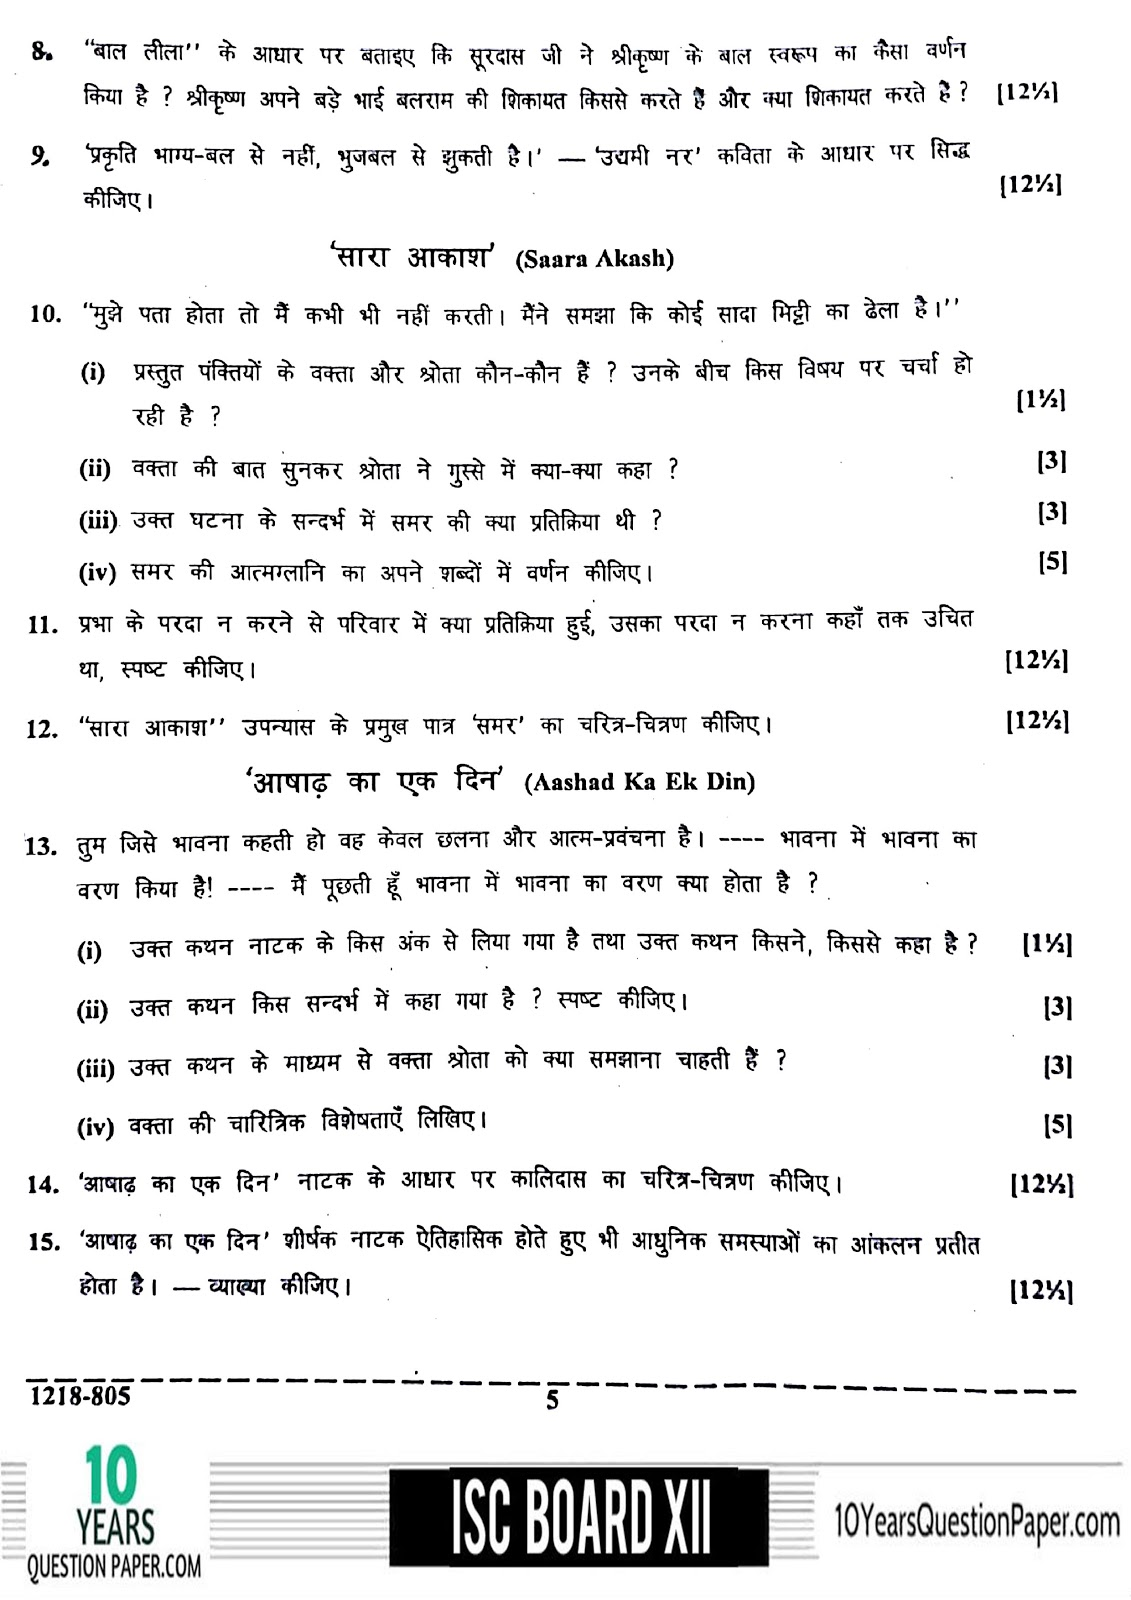 ISC Board 2018 class 12th Hindi question paper Download page-05